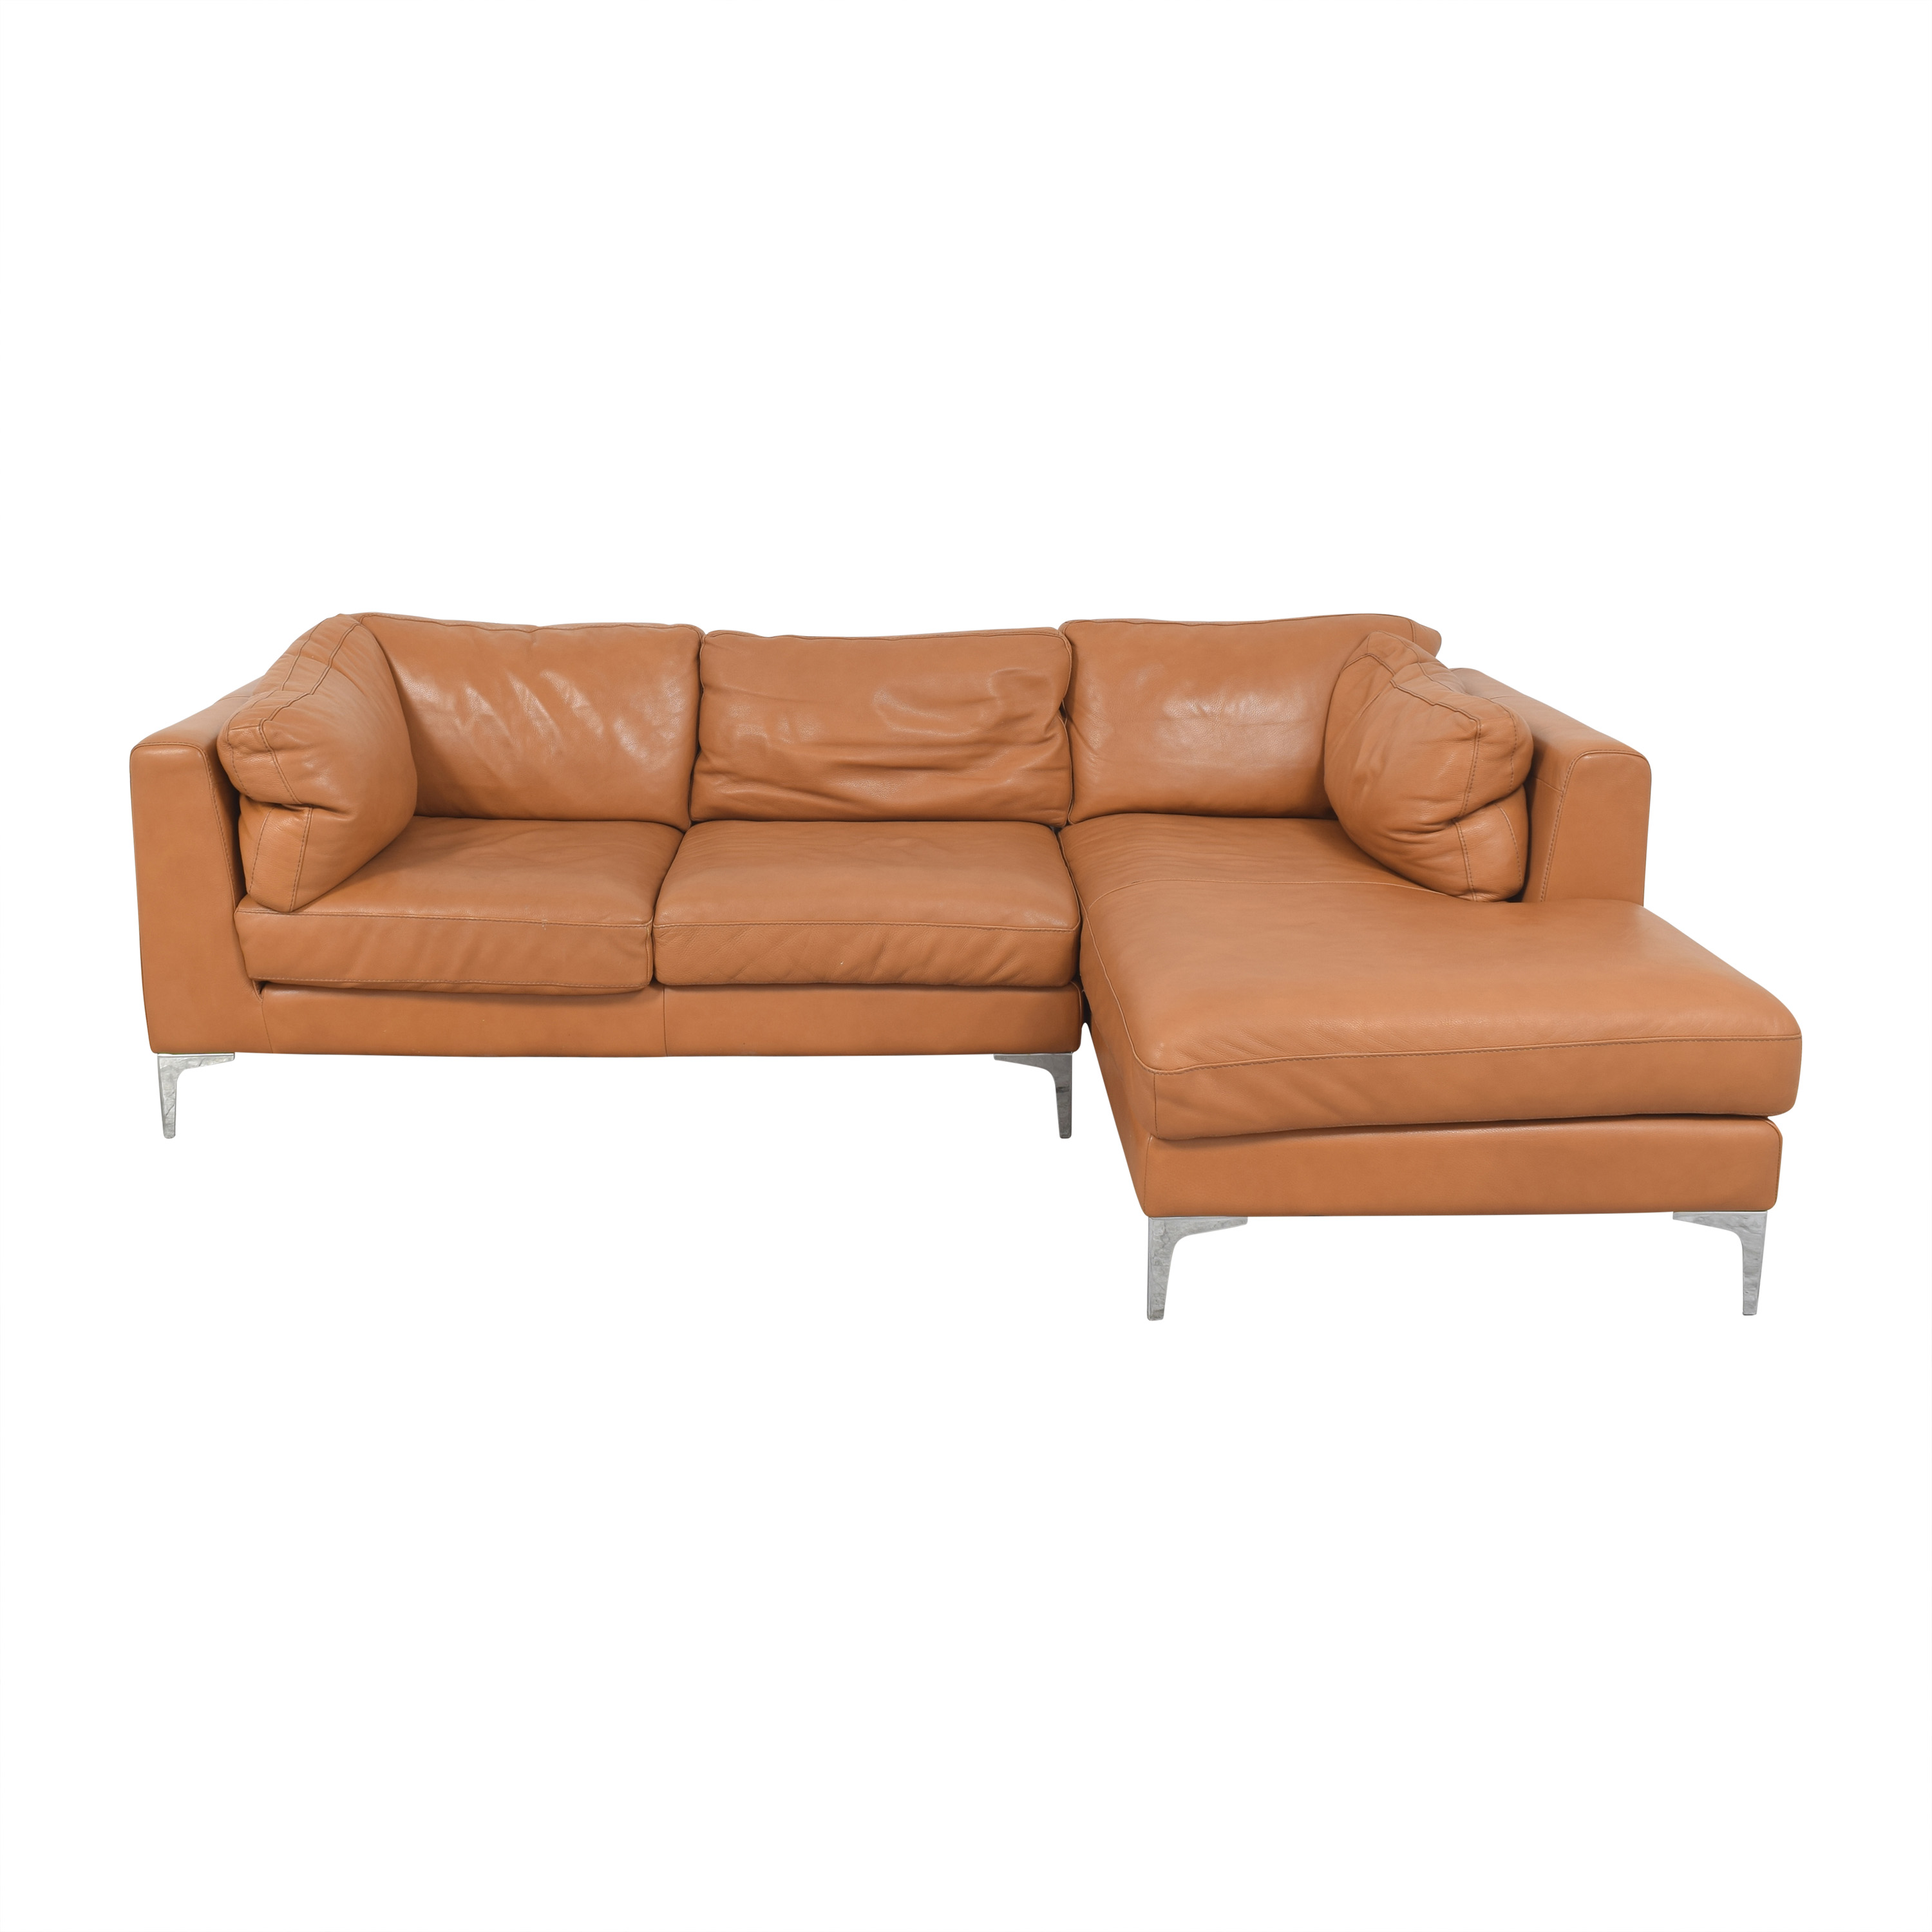 Design Within Reach Design Within Reach Albert Sectional Sofa on sale